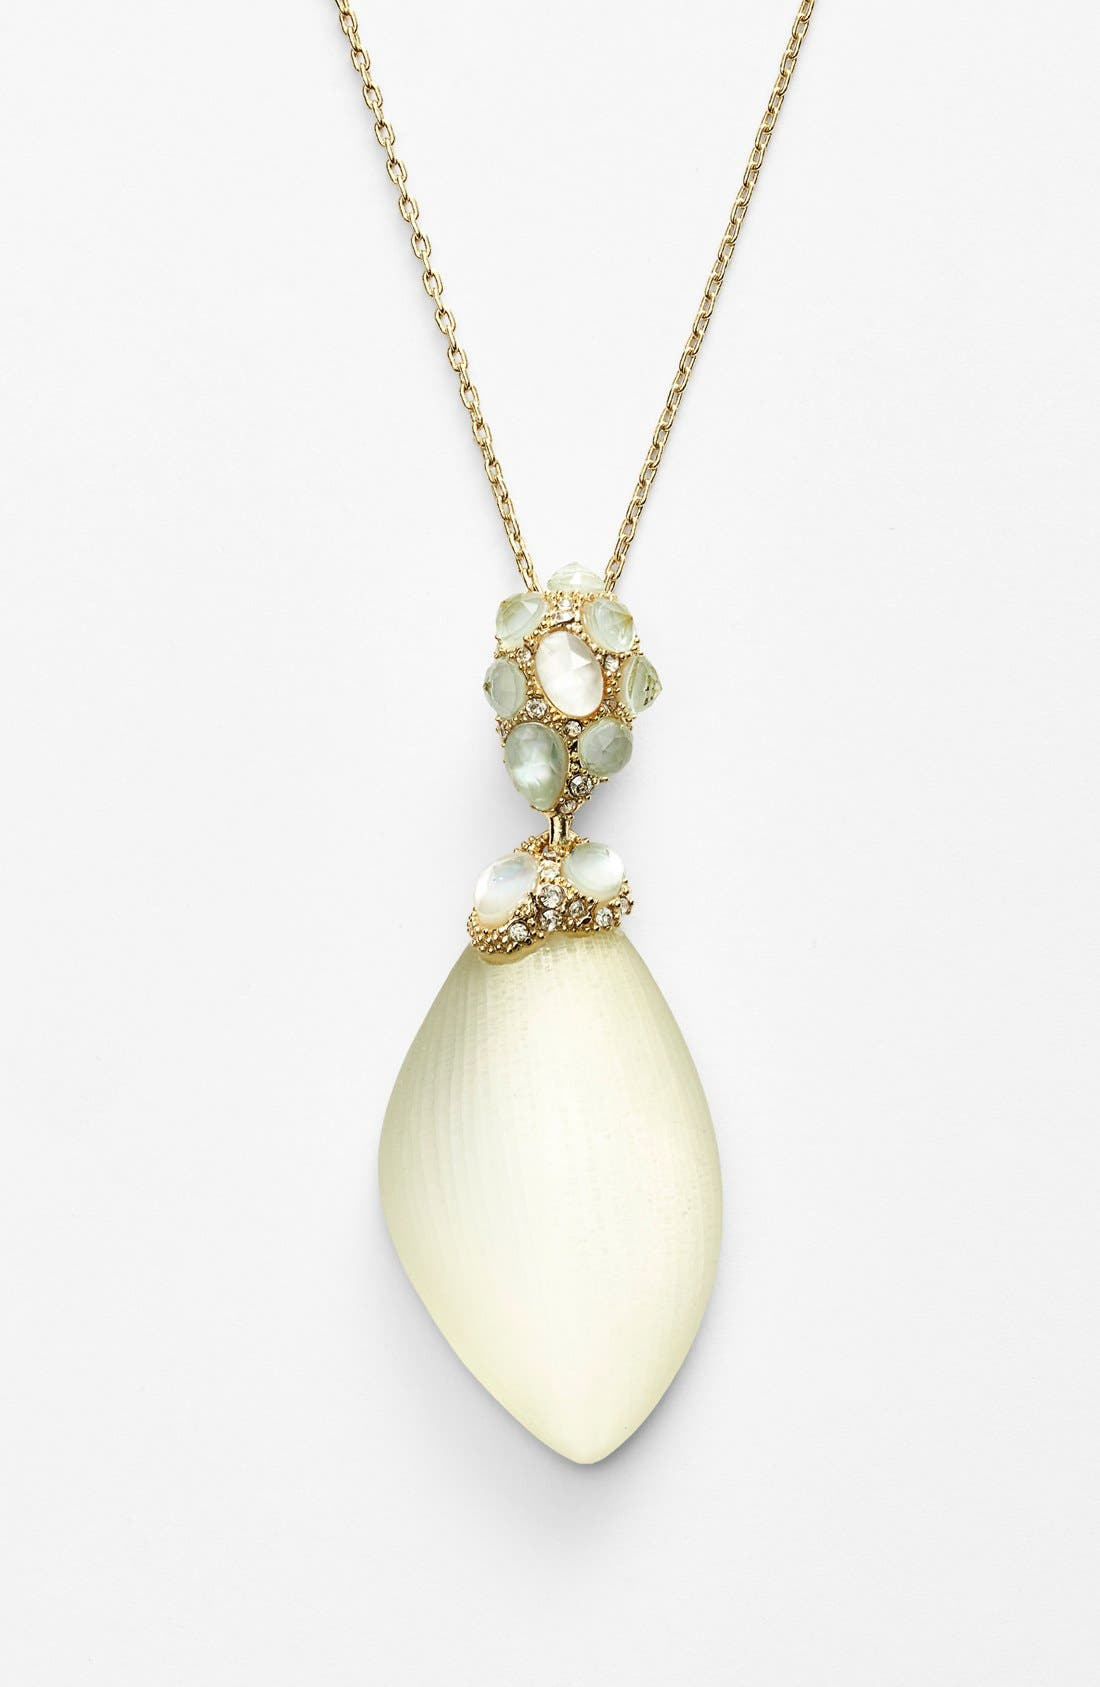 Alternate Image 1 Selected - Alexis Bittar 'Lucite®' Encrusted Pendant Necklace